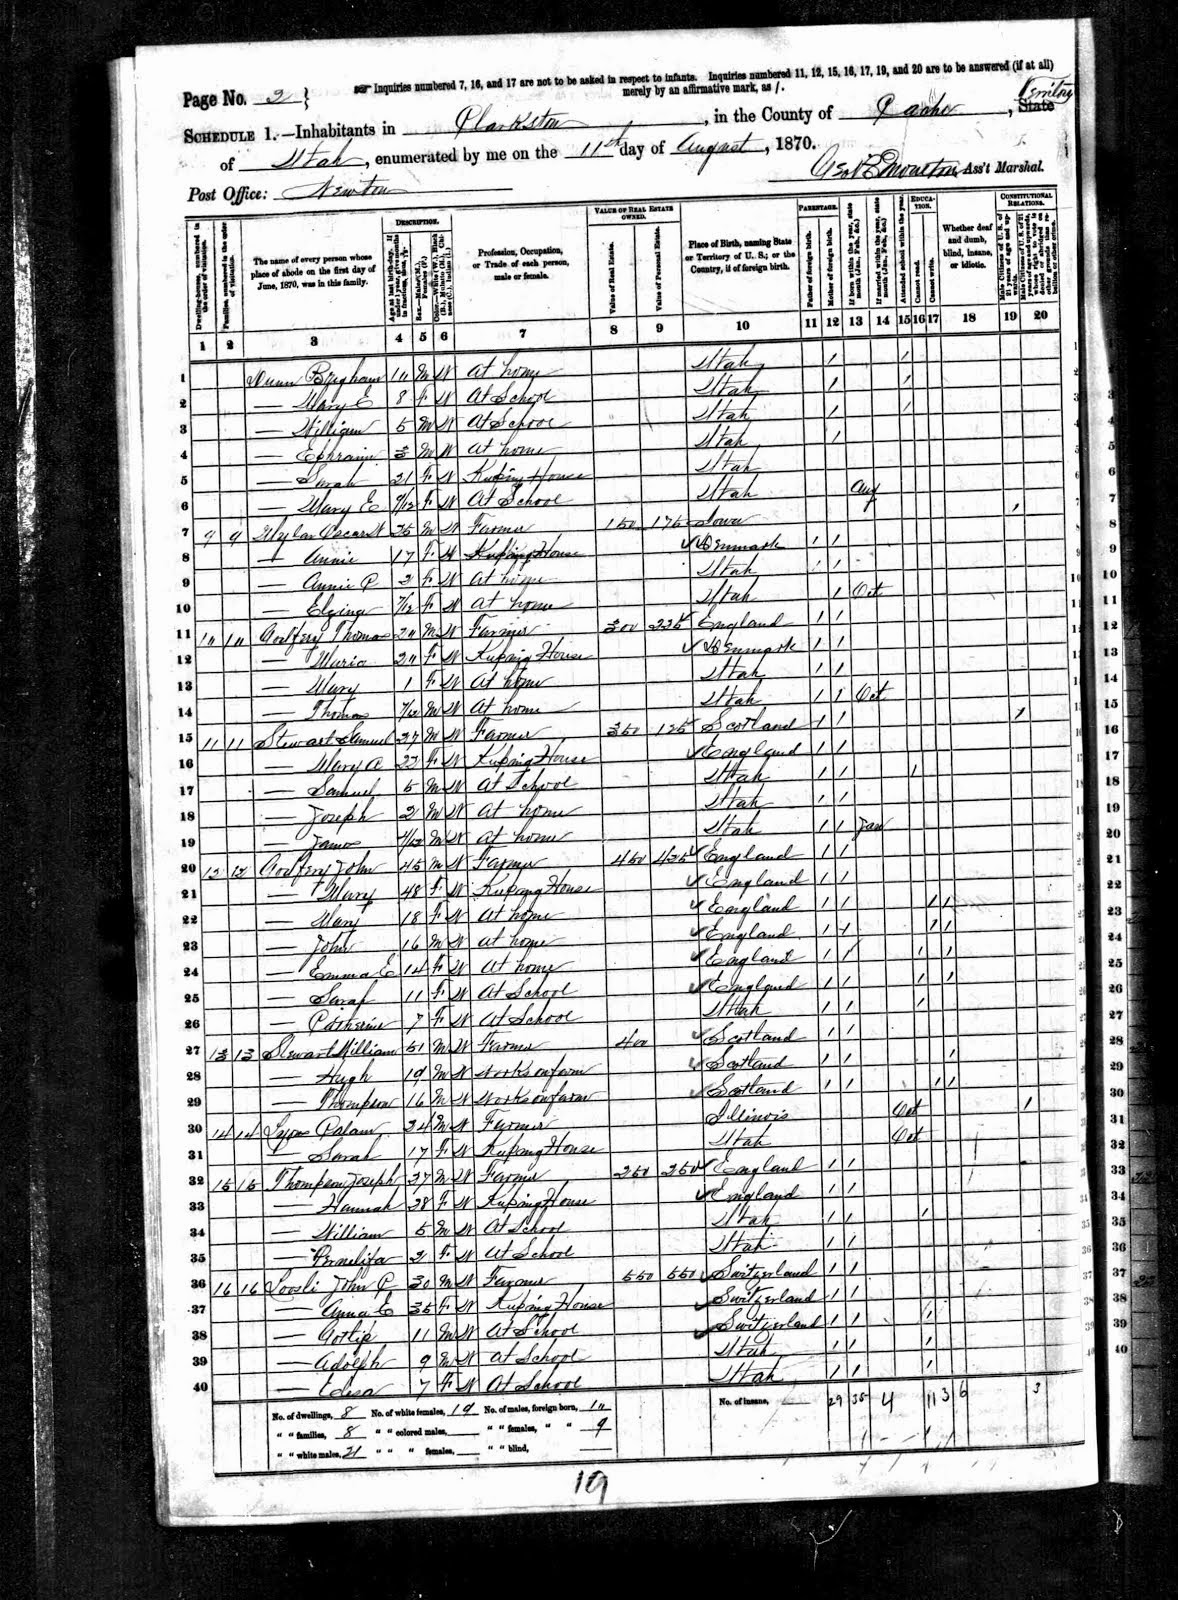 1870 Utah Census, Clarkston, Utah